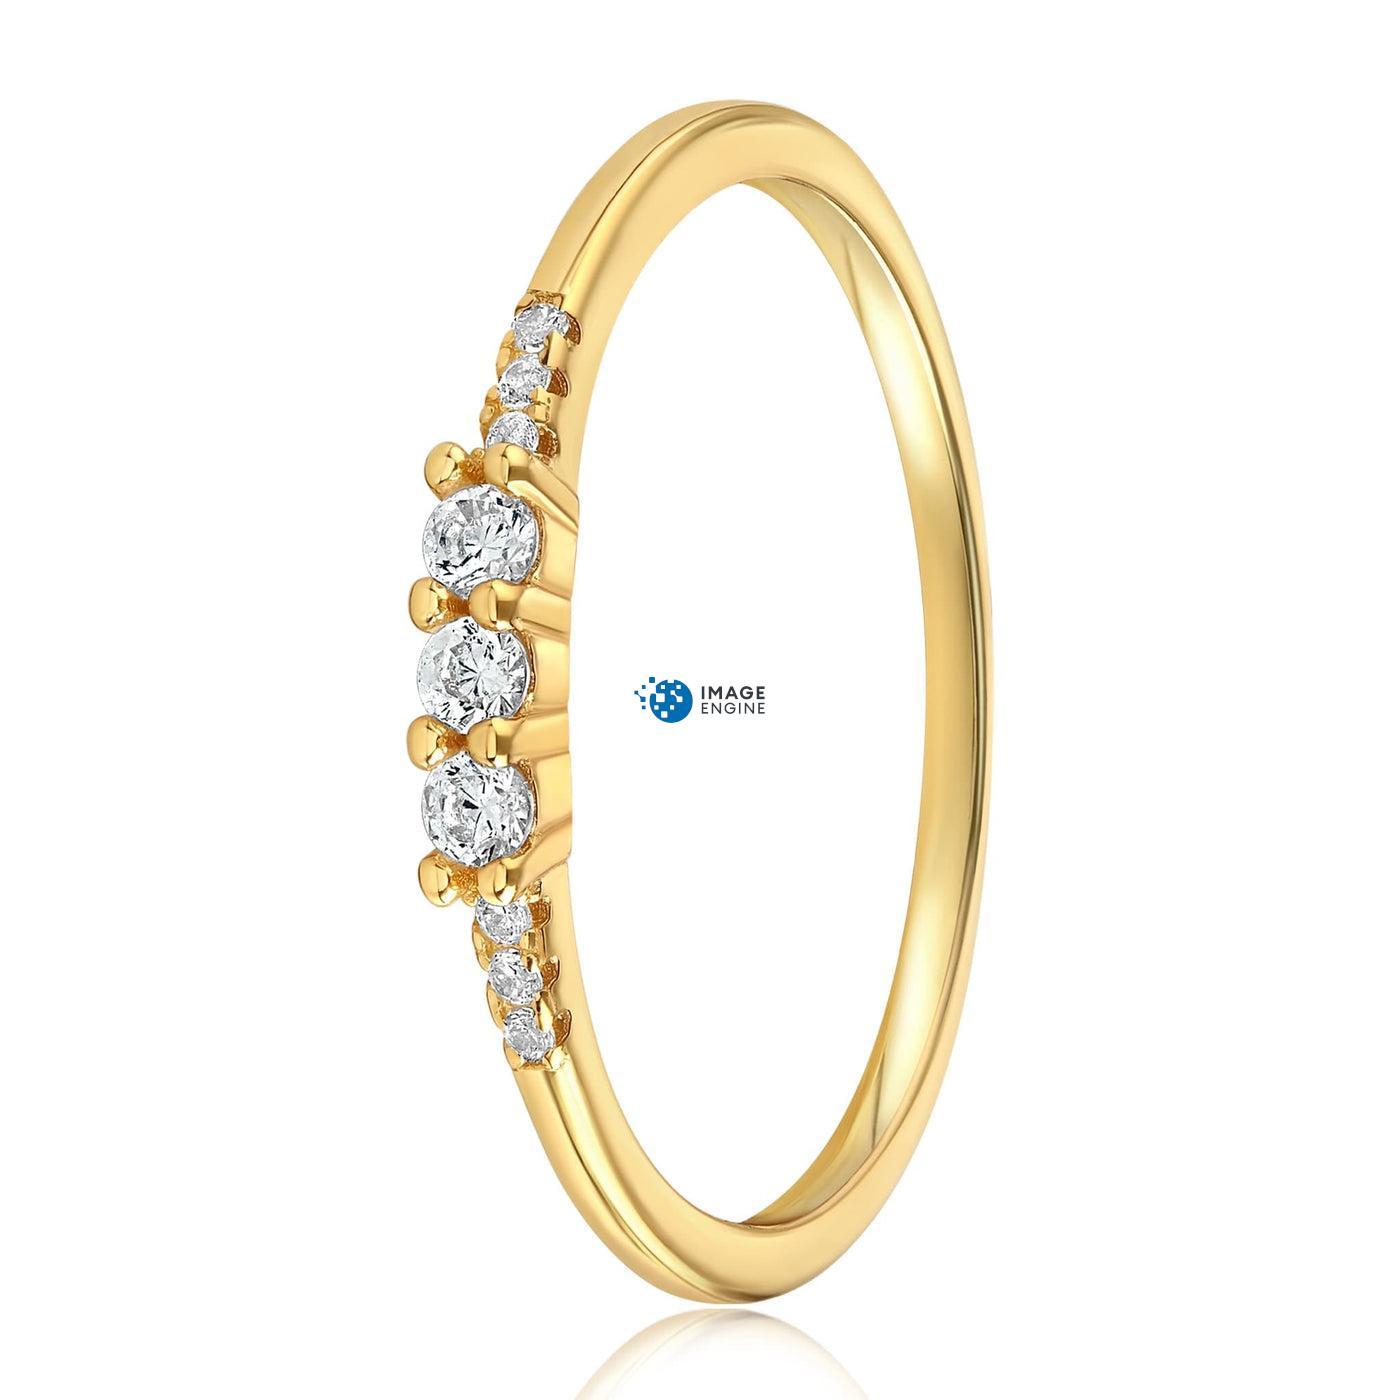 Emie Ring - Side View - 18K Yellow Gold Vermeil